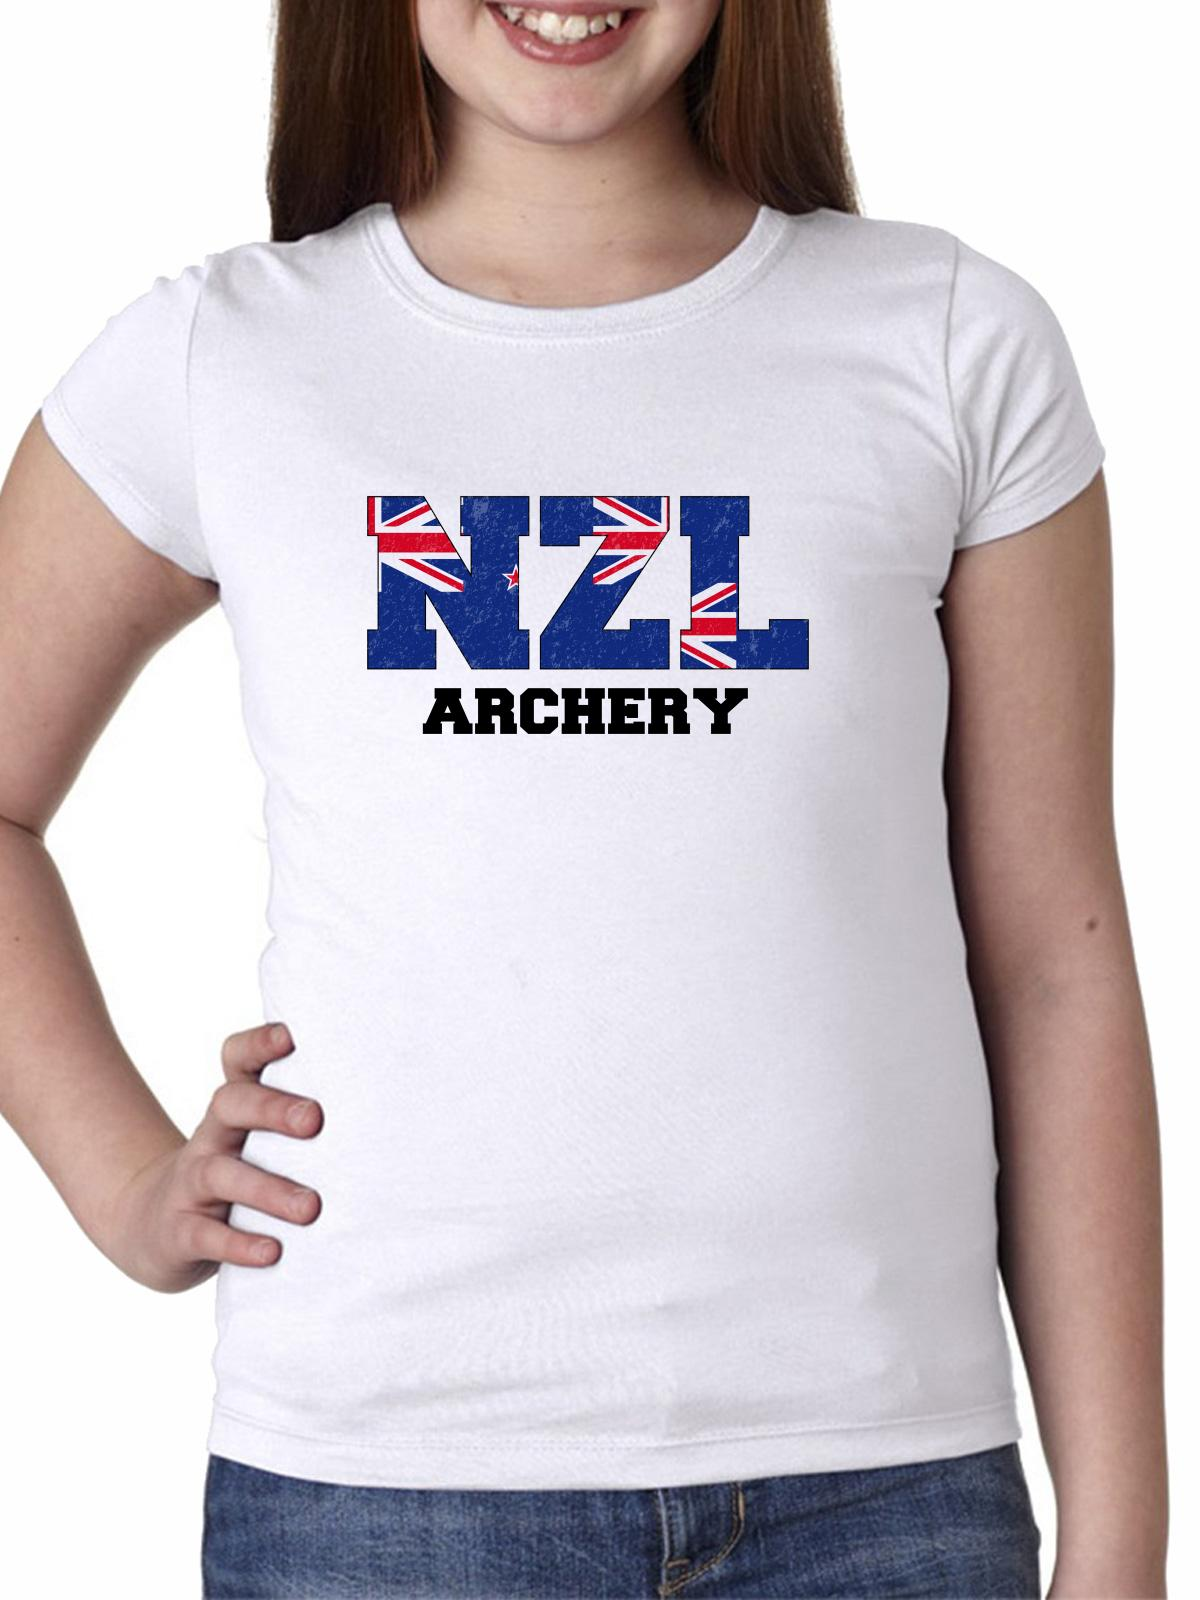 New Zealand Archery - Olympic Games - Rio - Flag Girl's Cotton Youth T-Shirt